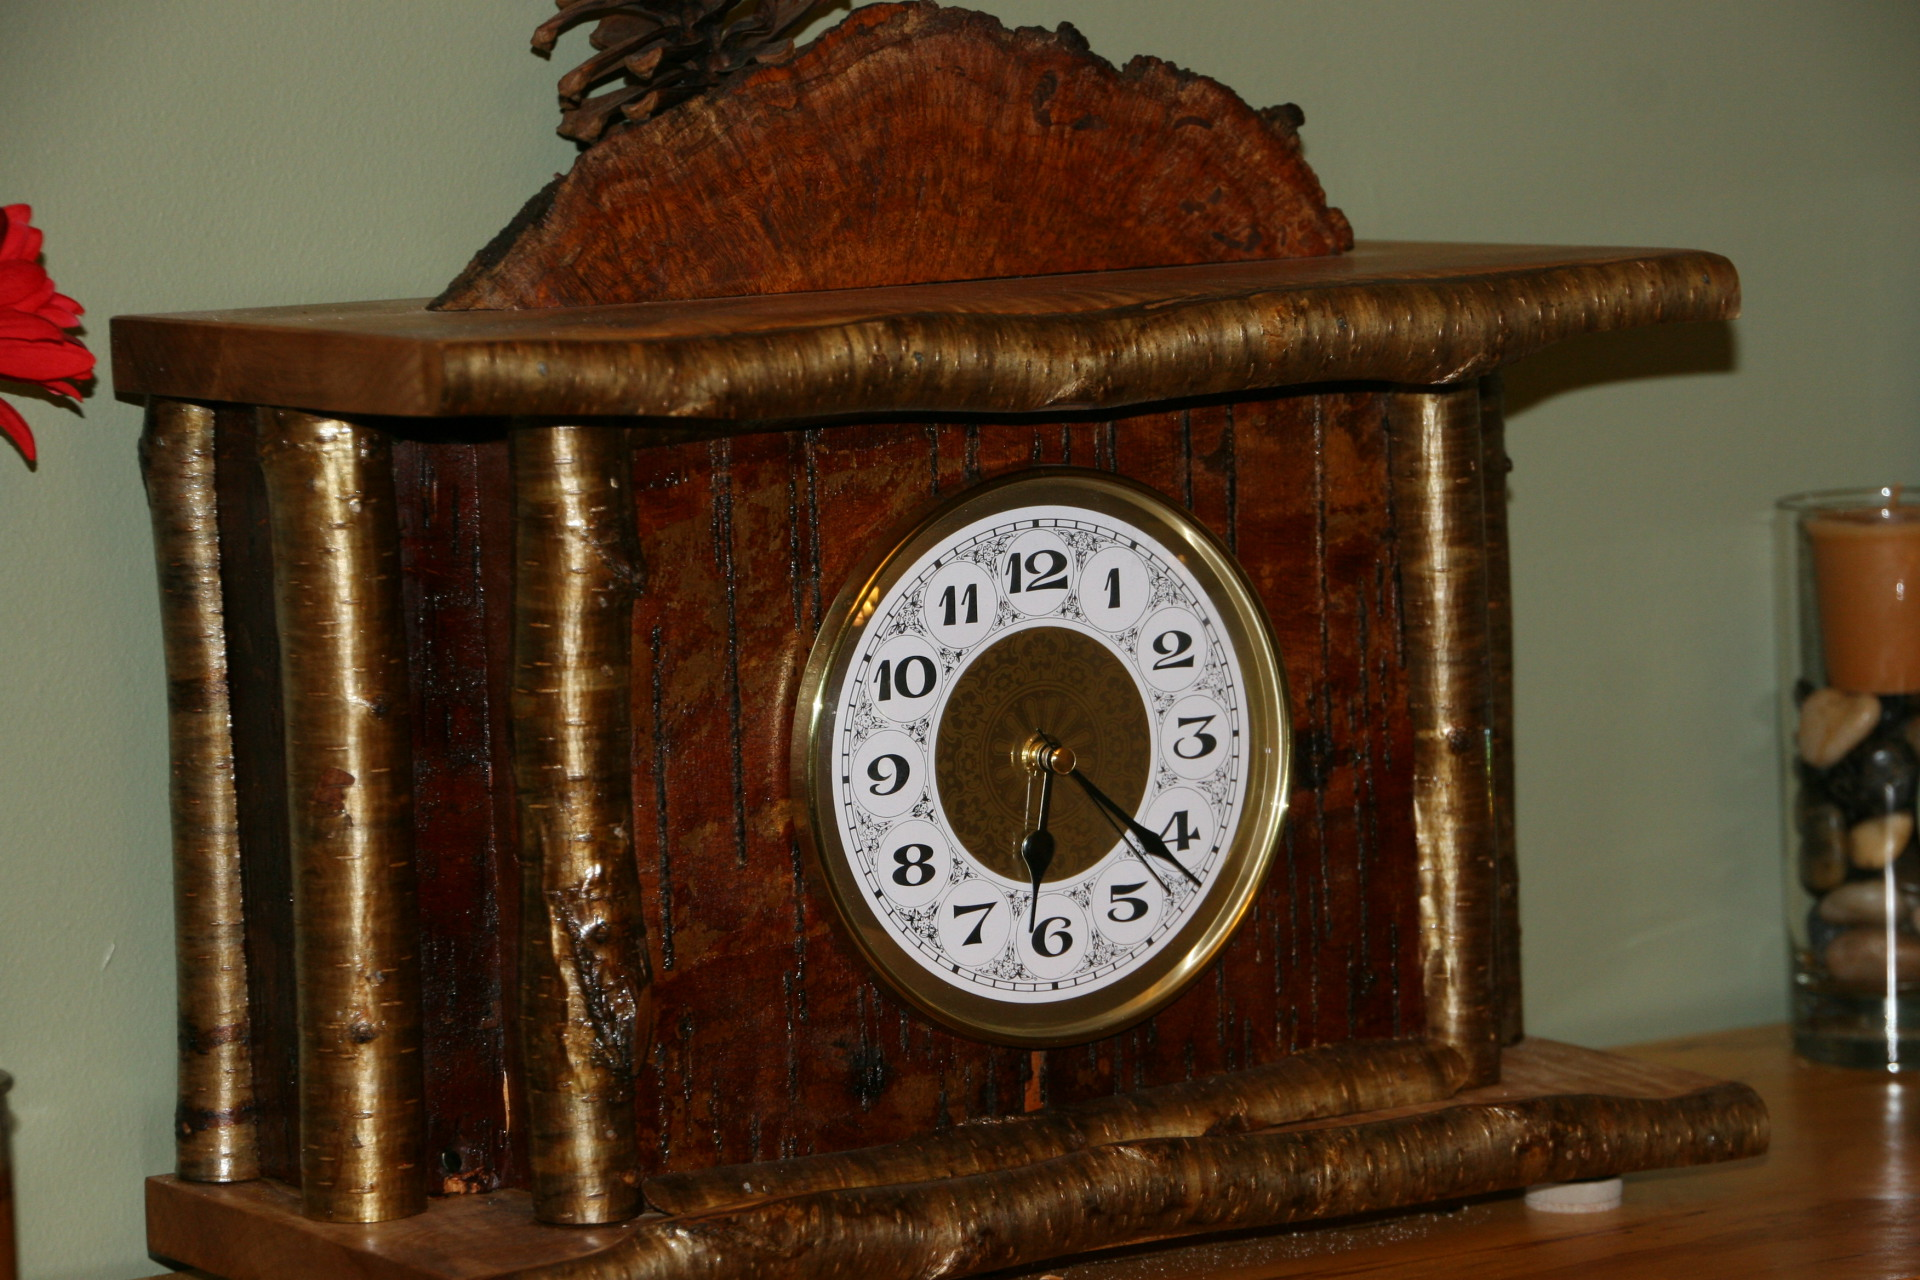 Rustic Clock with a twist - Cremation box discretely placed in bottom